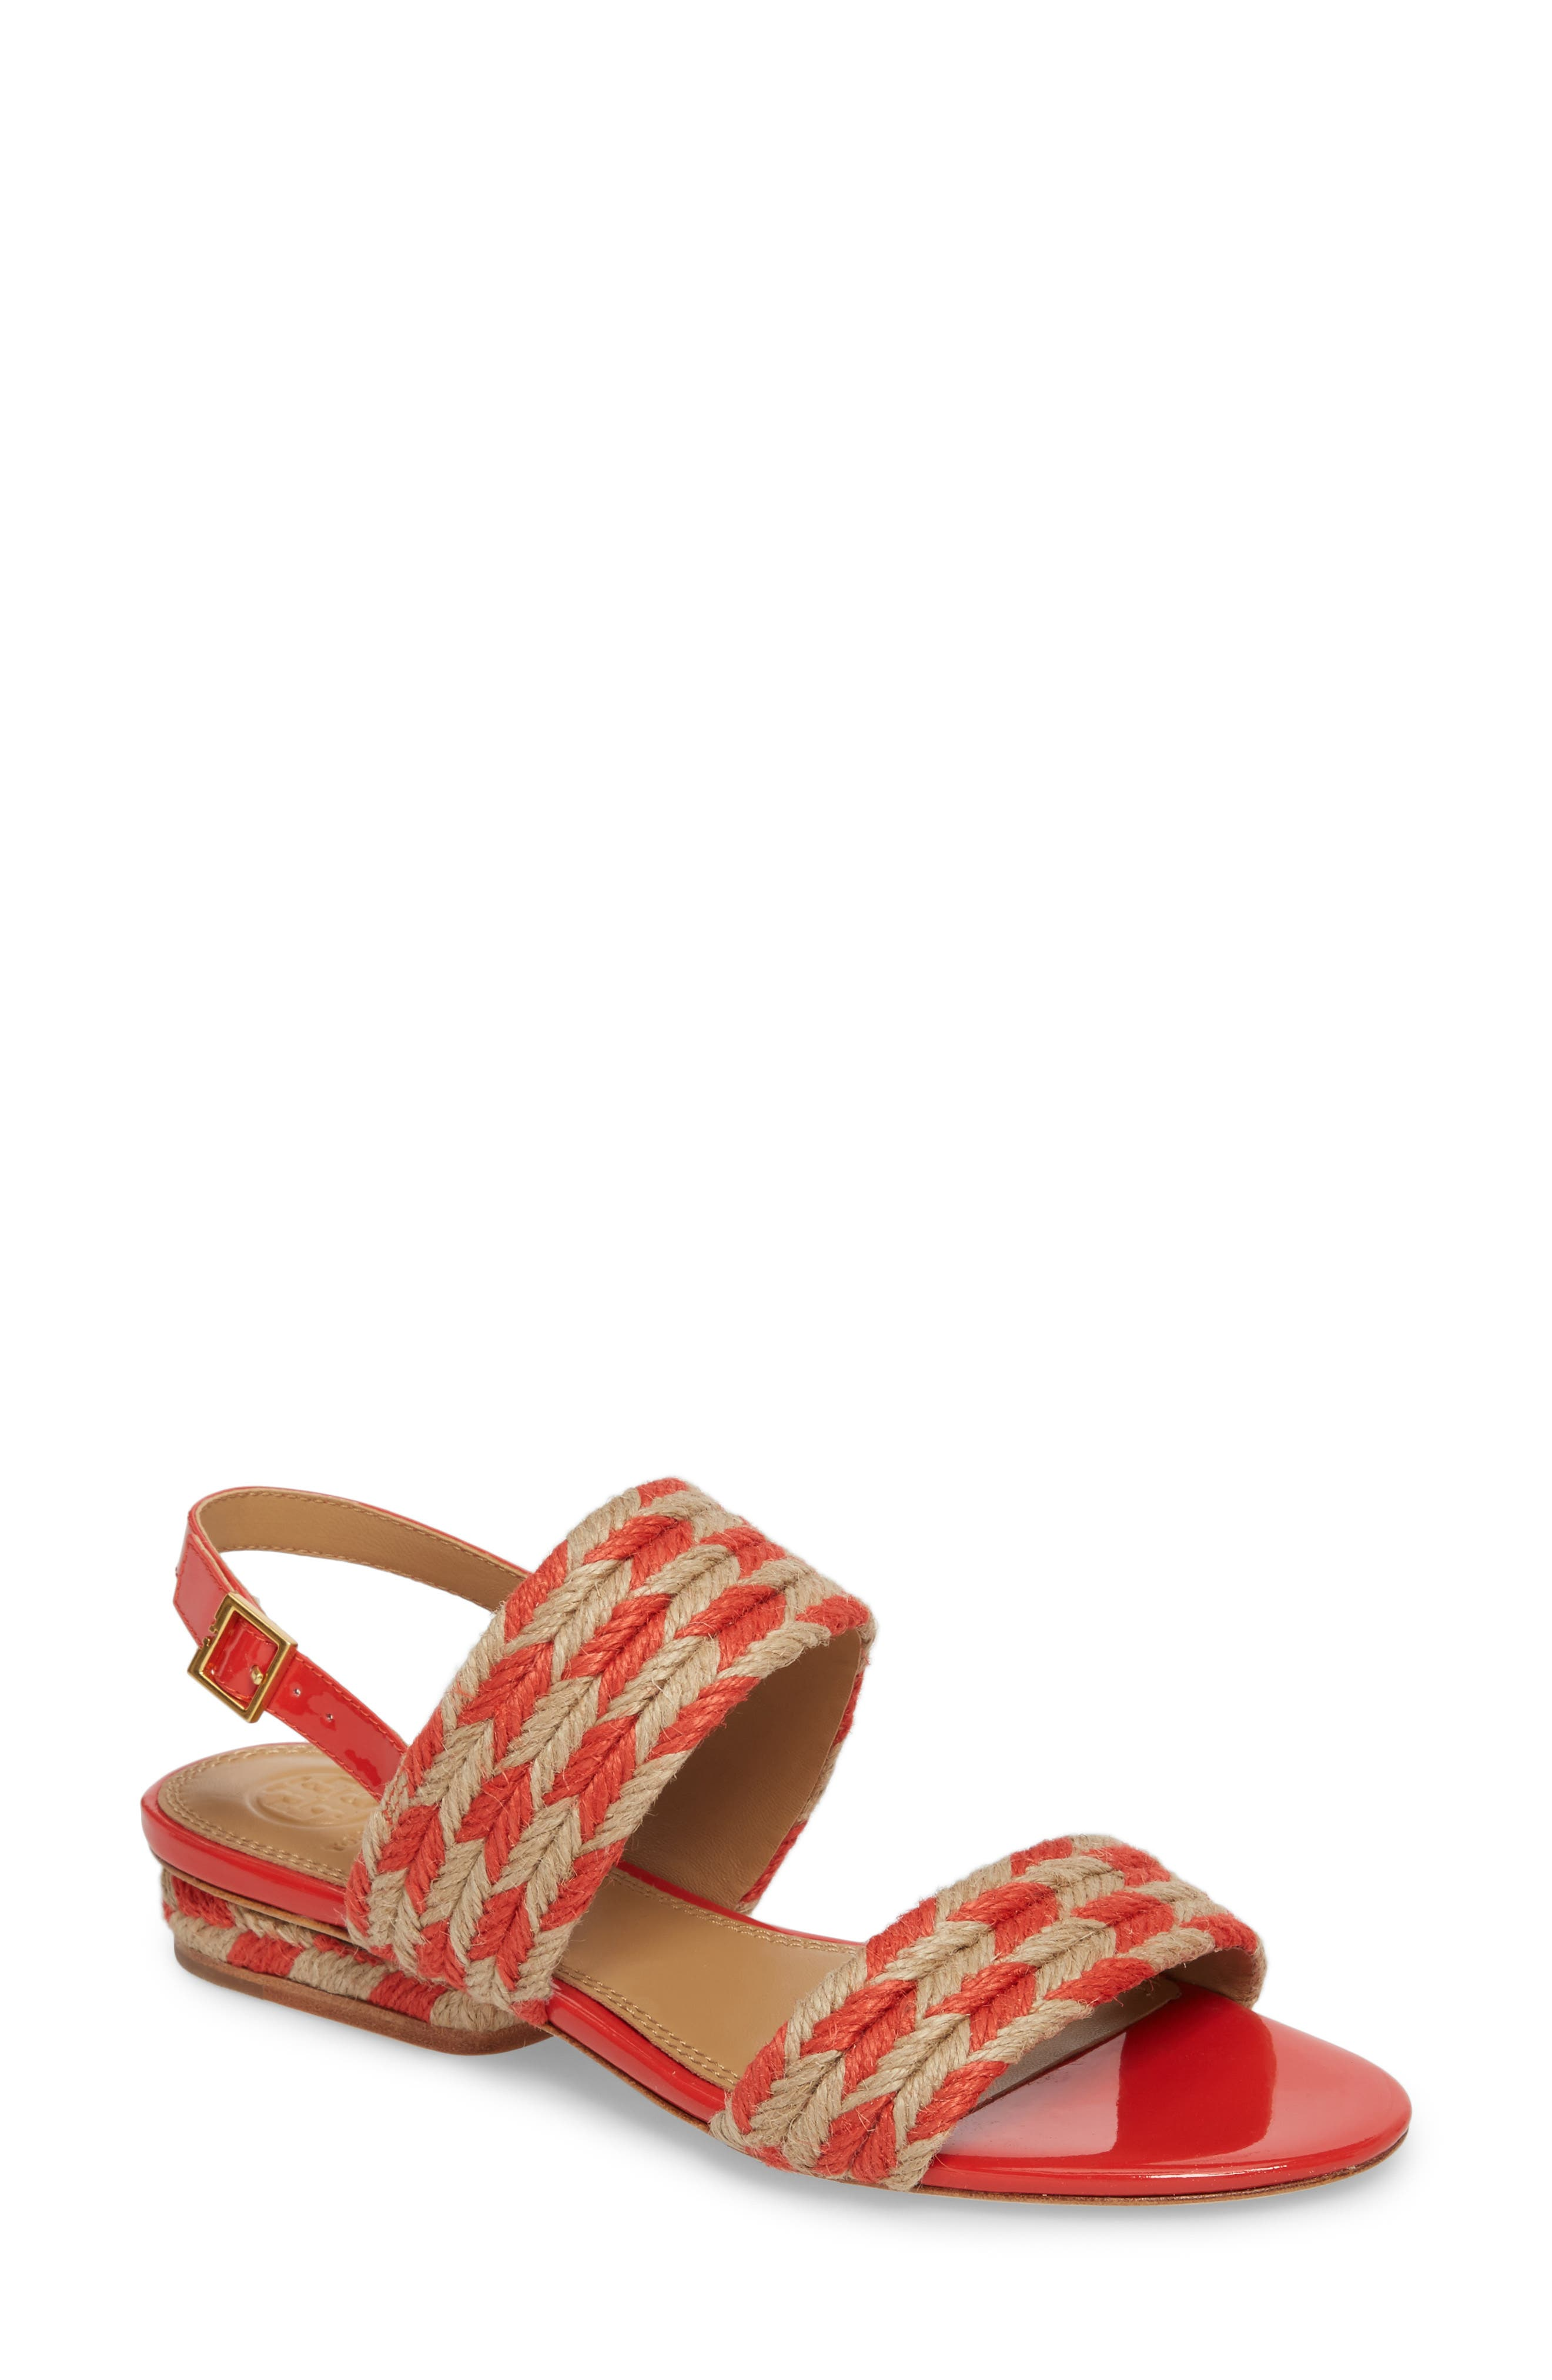 Lola Slingback Sandal,                             Main thumbnail 1, color,                             Poppy Orange/ Perfect Ivory